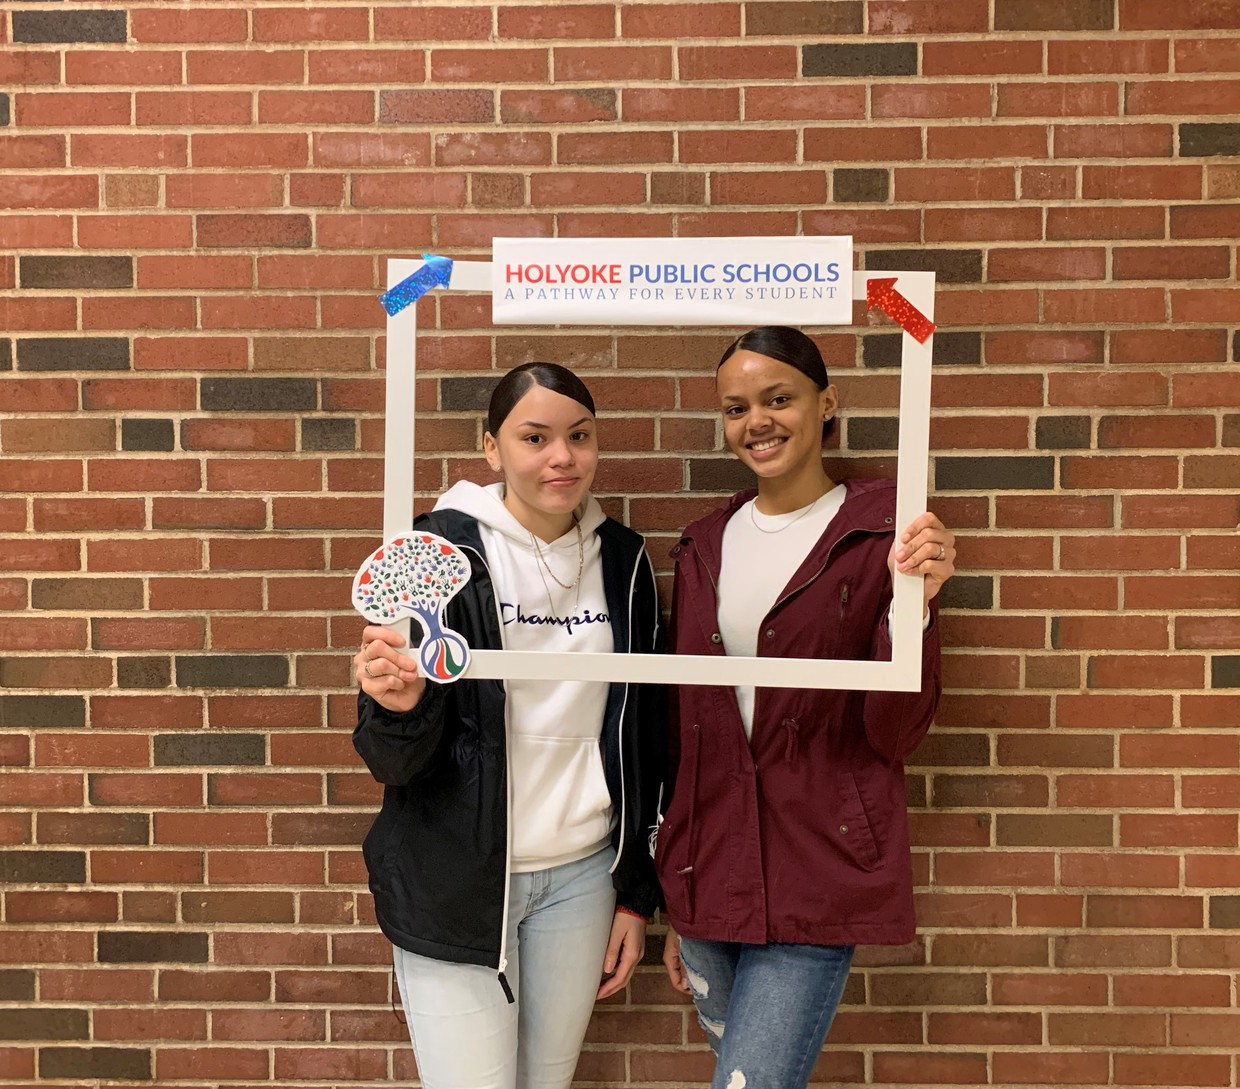 Work Based Learning - Angelique Sanchez and Ashanti Santana are Interns at Homework House